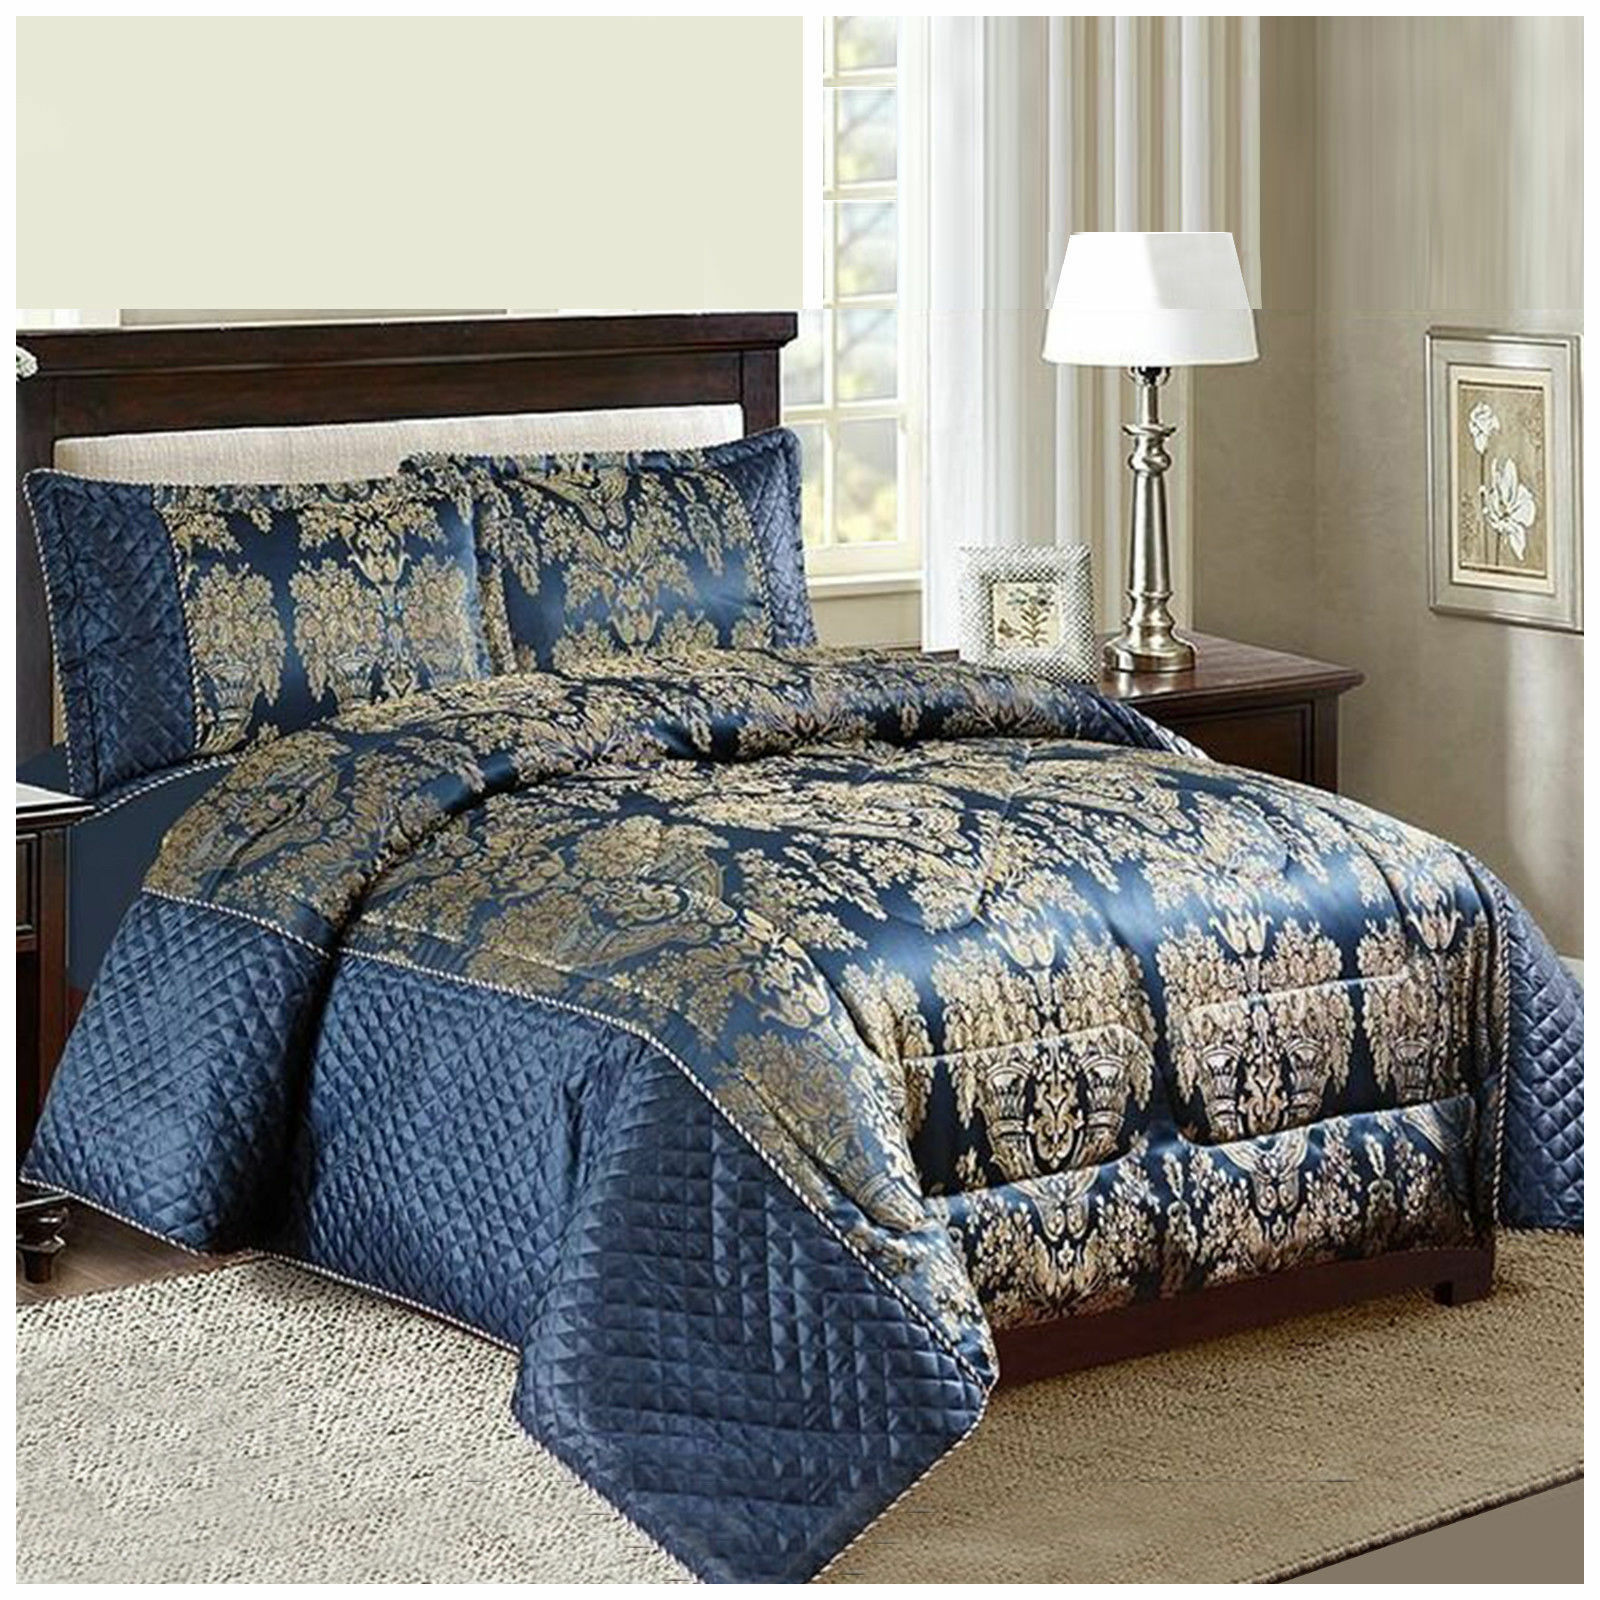 3 Pc JACQUARD SILK  SUPER KING BEDSPREAD  COMFORTER +2  PILLOW SHAMS